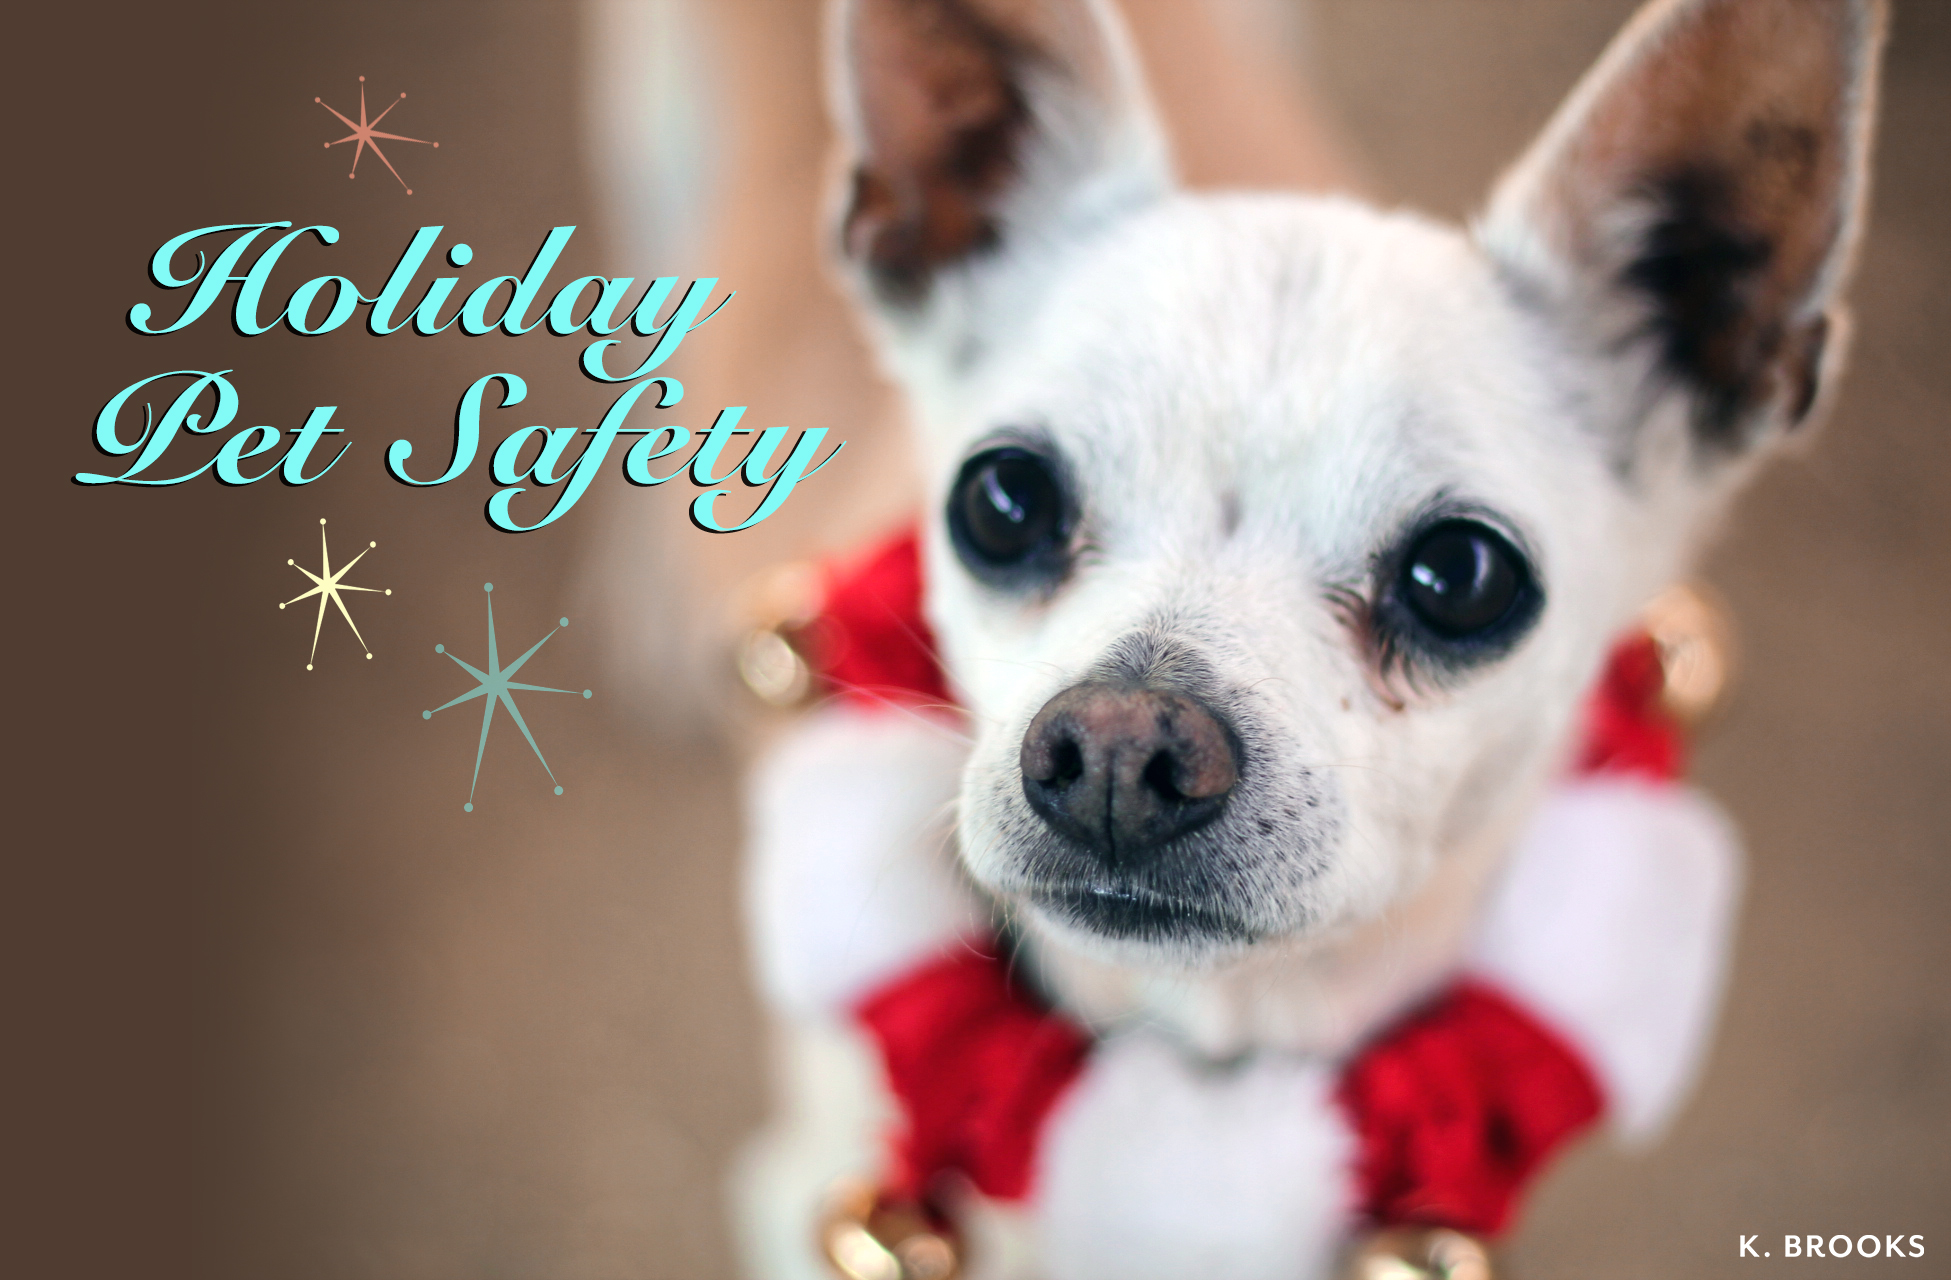 holiday.pet.safety.mogie.jpg